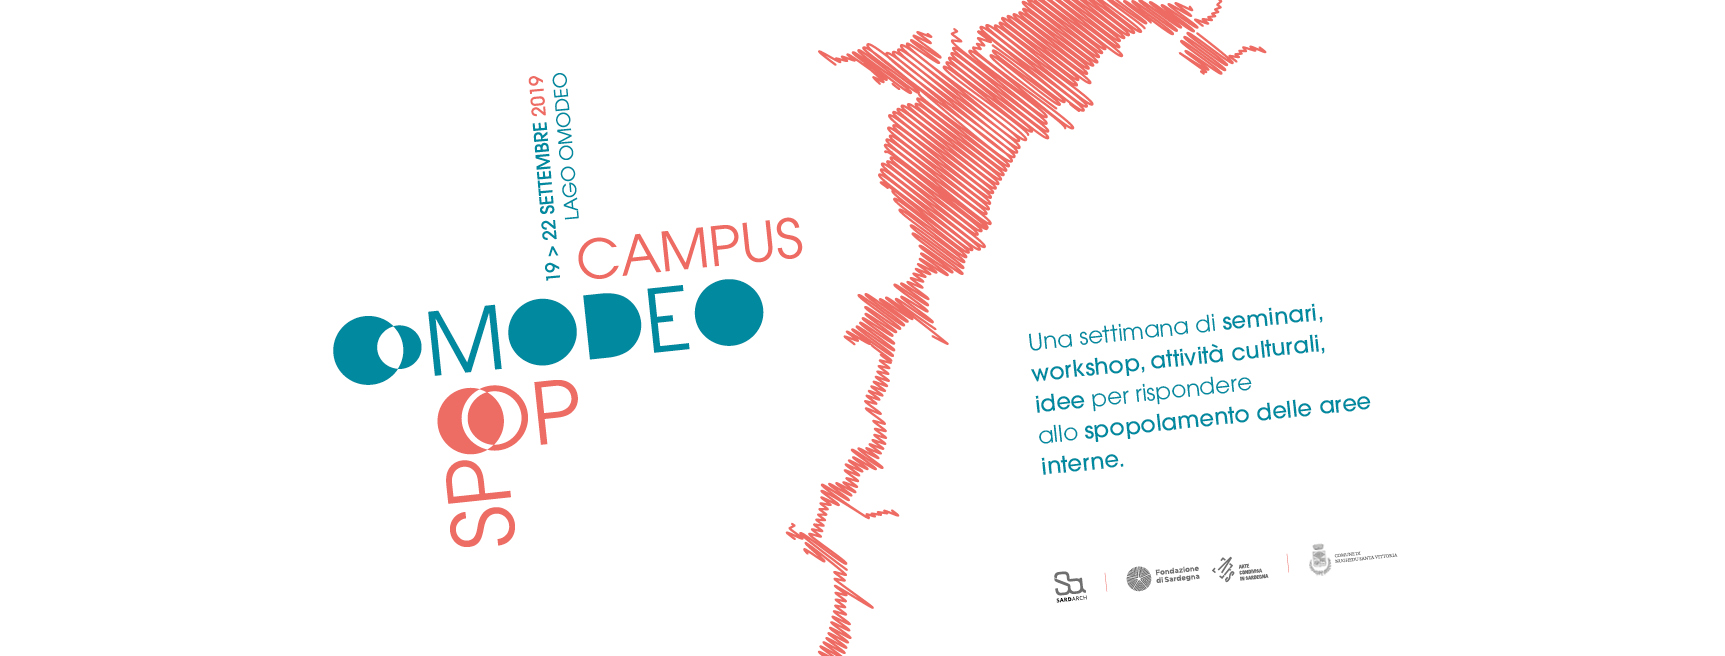 SPOP CAMPUS OMODEO 2019